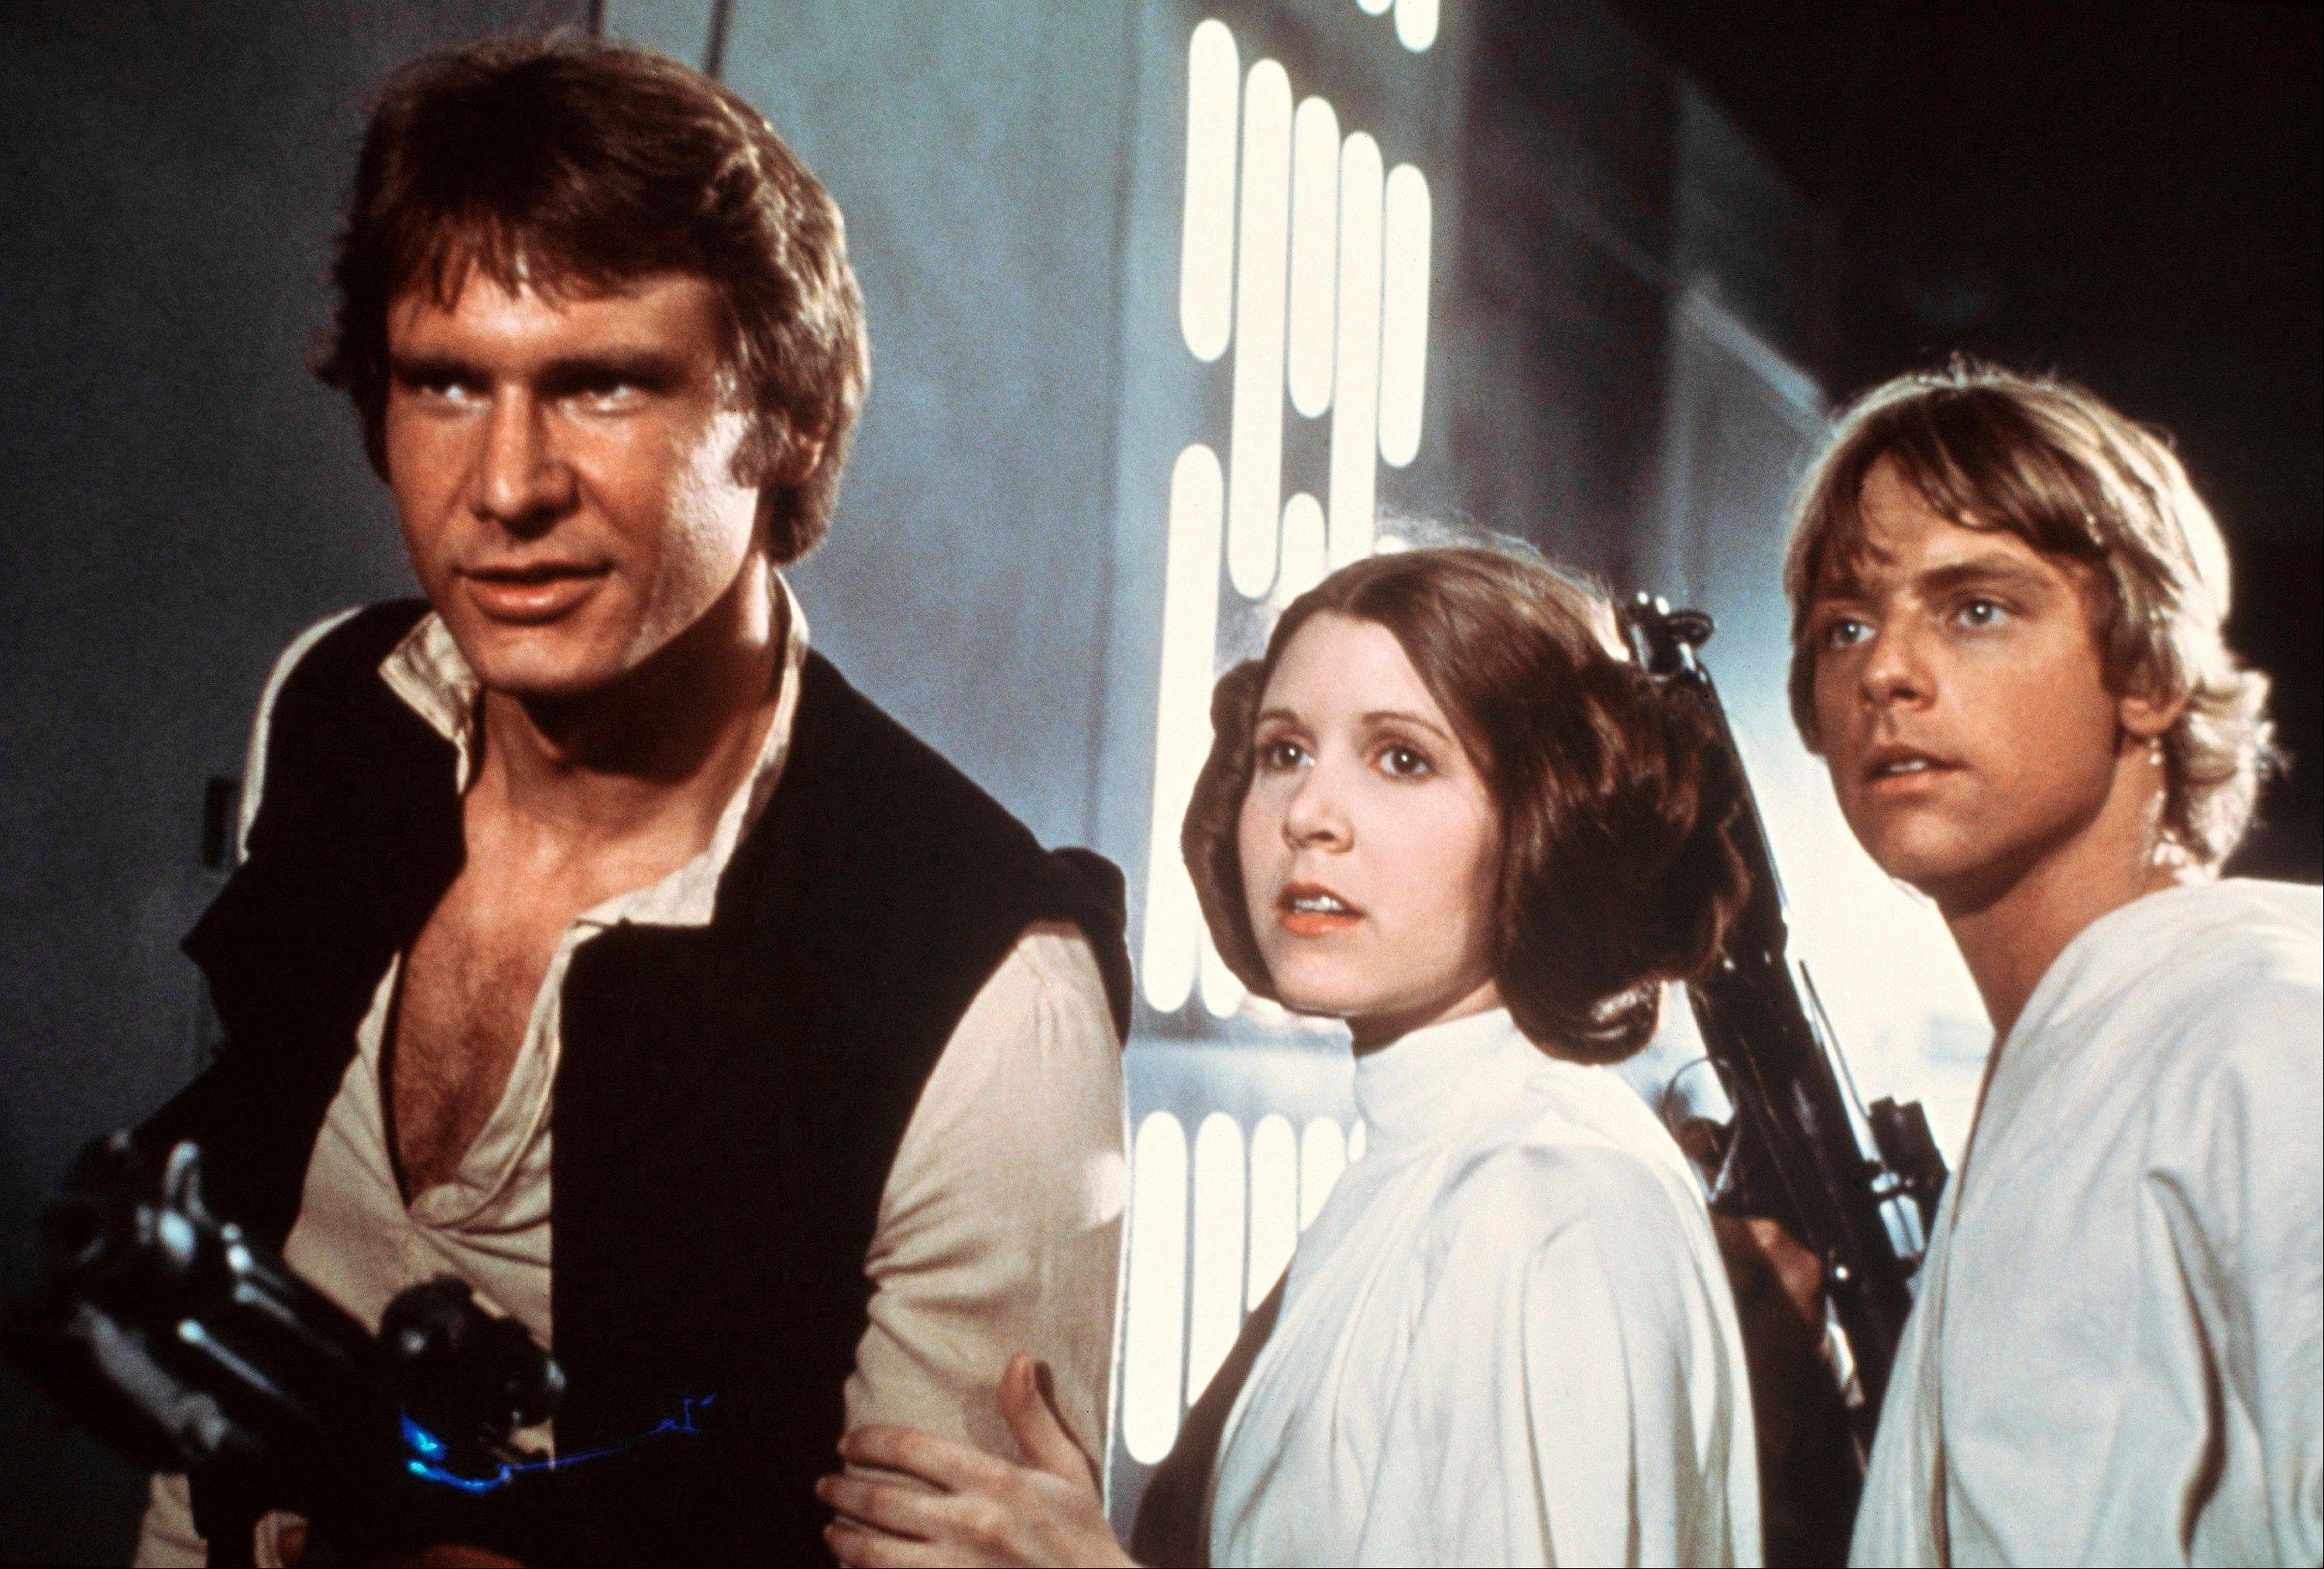 Harrison Ford, as Han Solo, Carrie Fisher, as Princess Leia Organa and Mark Hamill, as Luke Skywalker in a scene from the 1977 �Star Wars� movie.